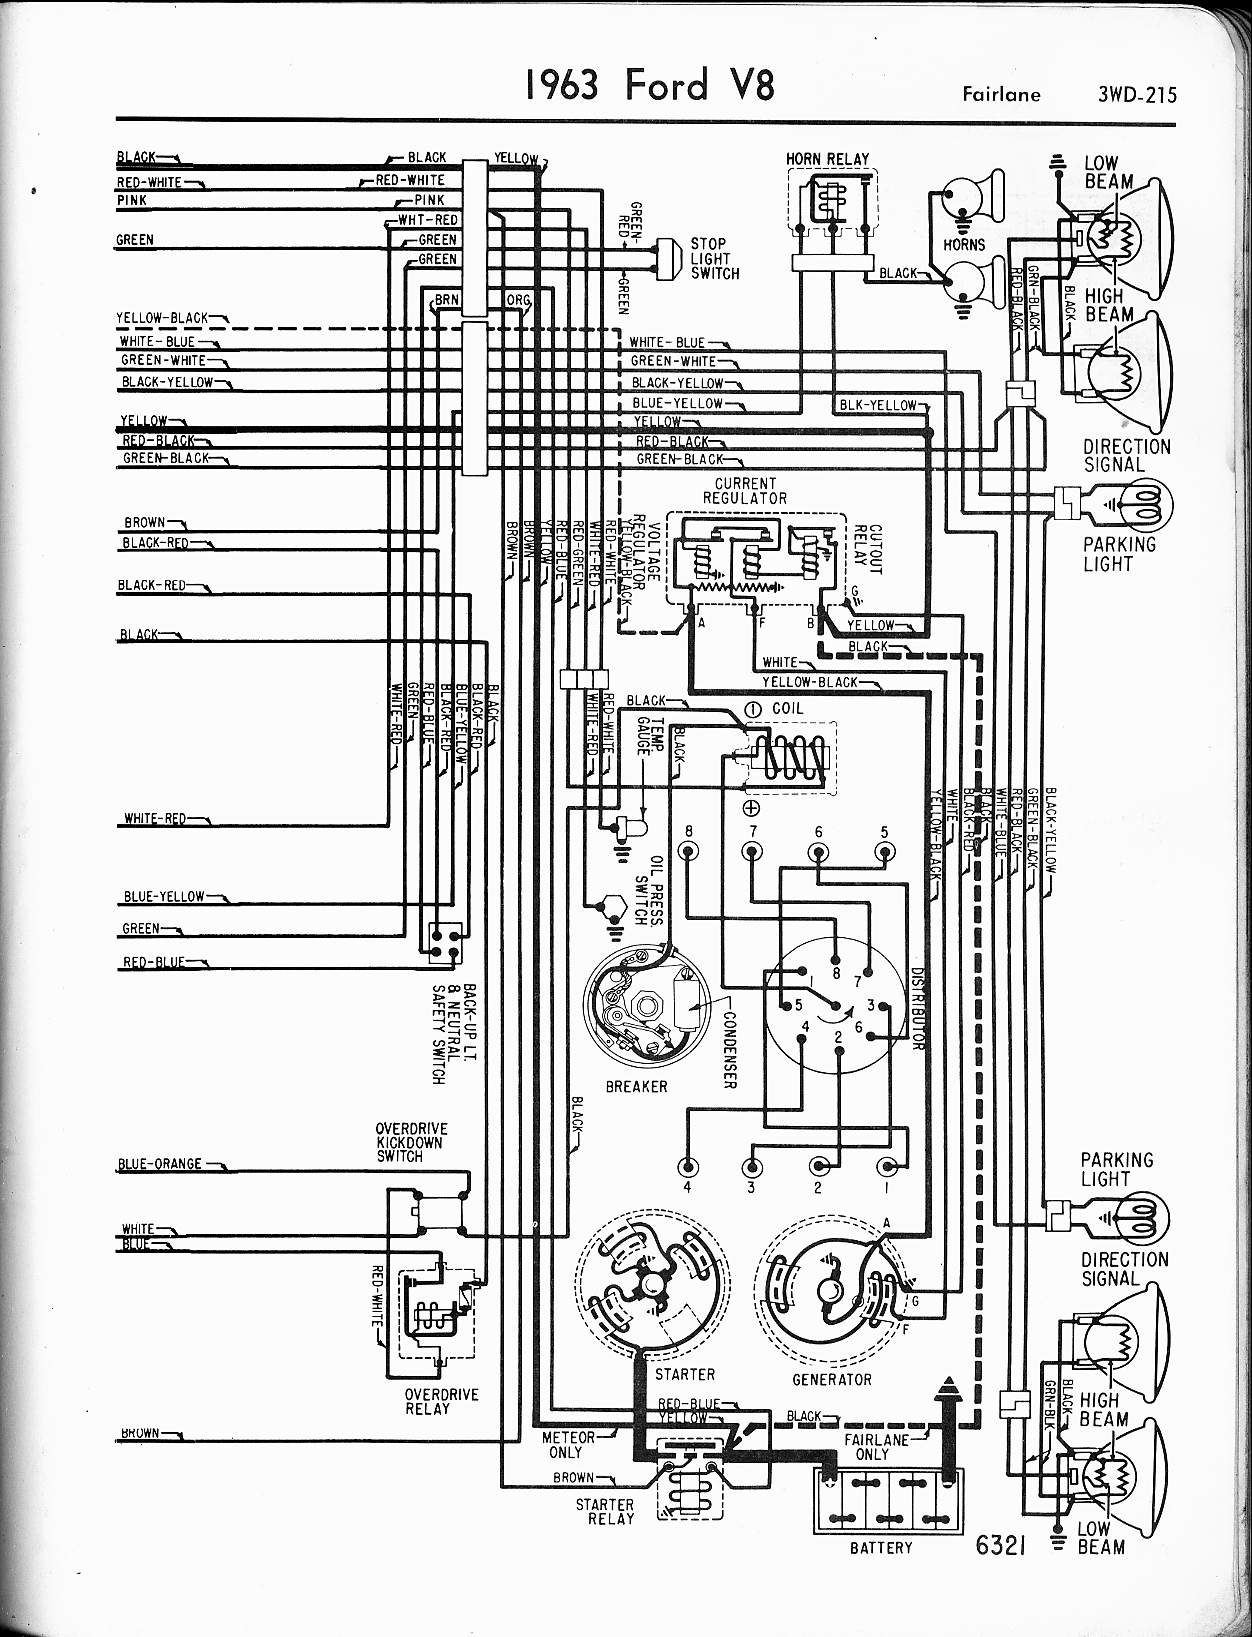 1968 torino wiring diagrams online circuit wiring diagram u2022 rh electrobuddha co uk